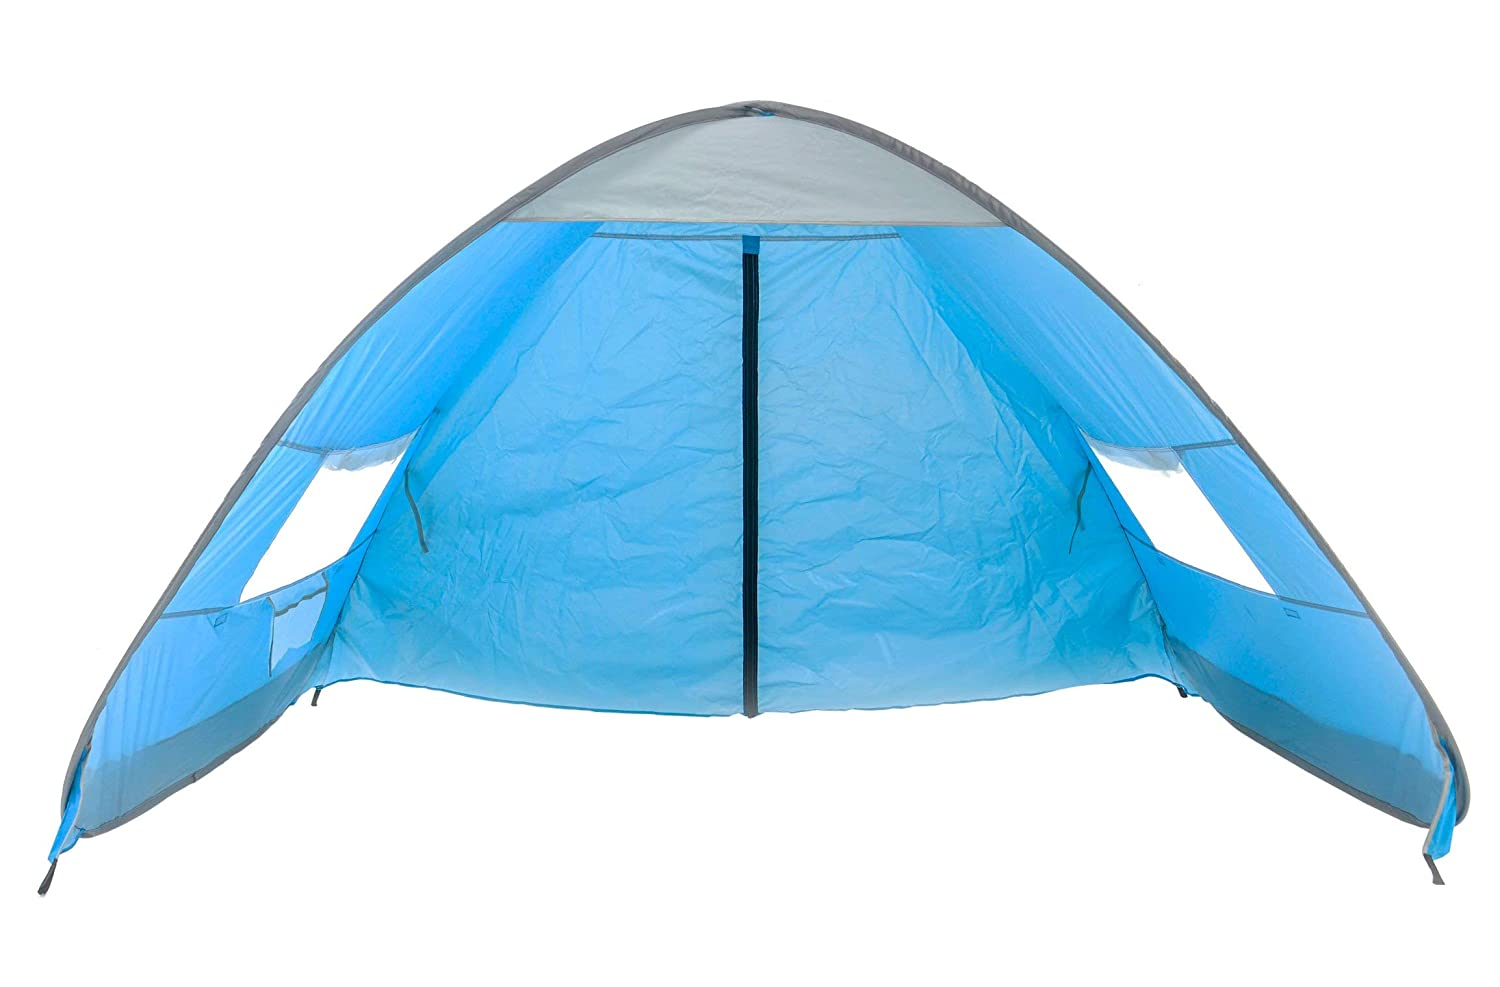 SolarWave Recharge, Outdoor Easy-up | Pop-up Beach Sun UVB Tent. Pure ENJOYMENT: Relax, Recharge, Regroup! Reduces UVA and UVB Rays by 99.8%, Your New QUALITY Shade | Shelter is GREAT for the Park and Soccer Game. [並行輸入品] B07R4V3P2Q, 和柄専門店のサクラスタイル:74ea7581 --- number-directory.top